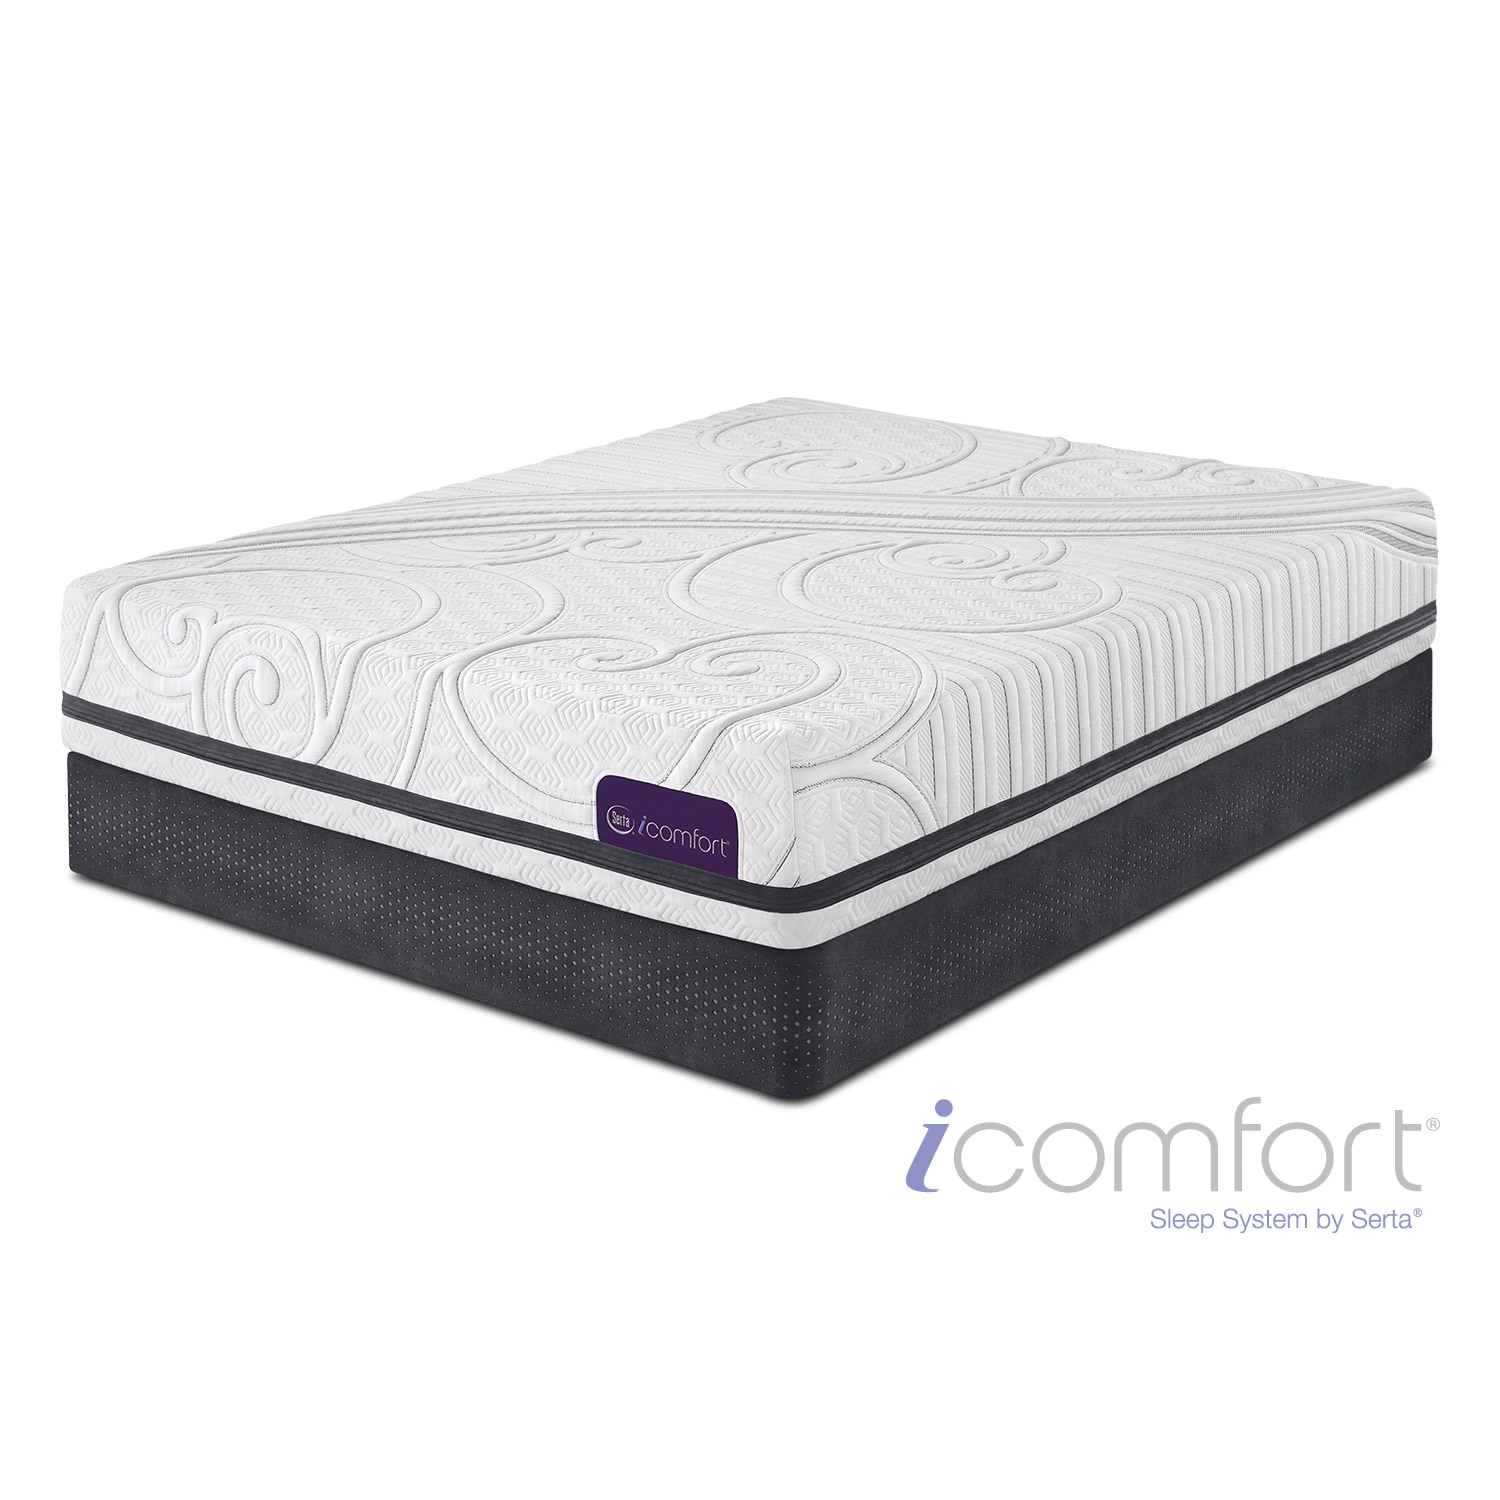 Mattresses and Bedding - Savant III Firm Full Mattress and Low-Profile Foundation Set